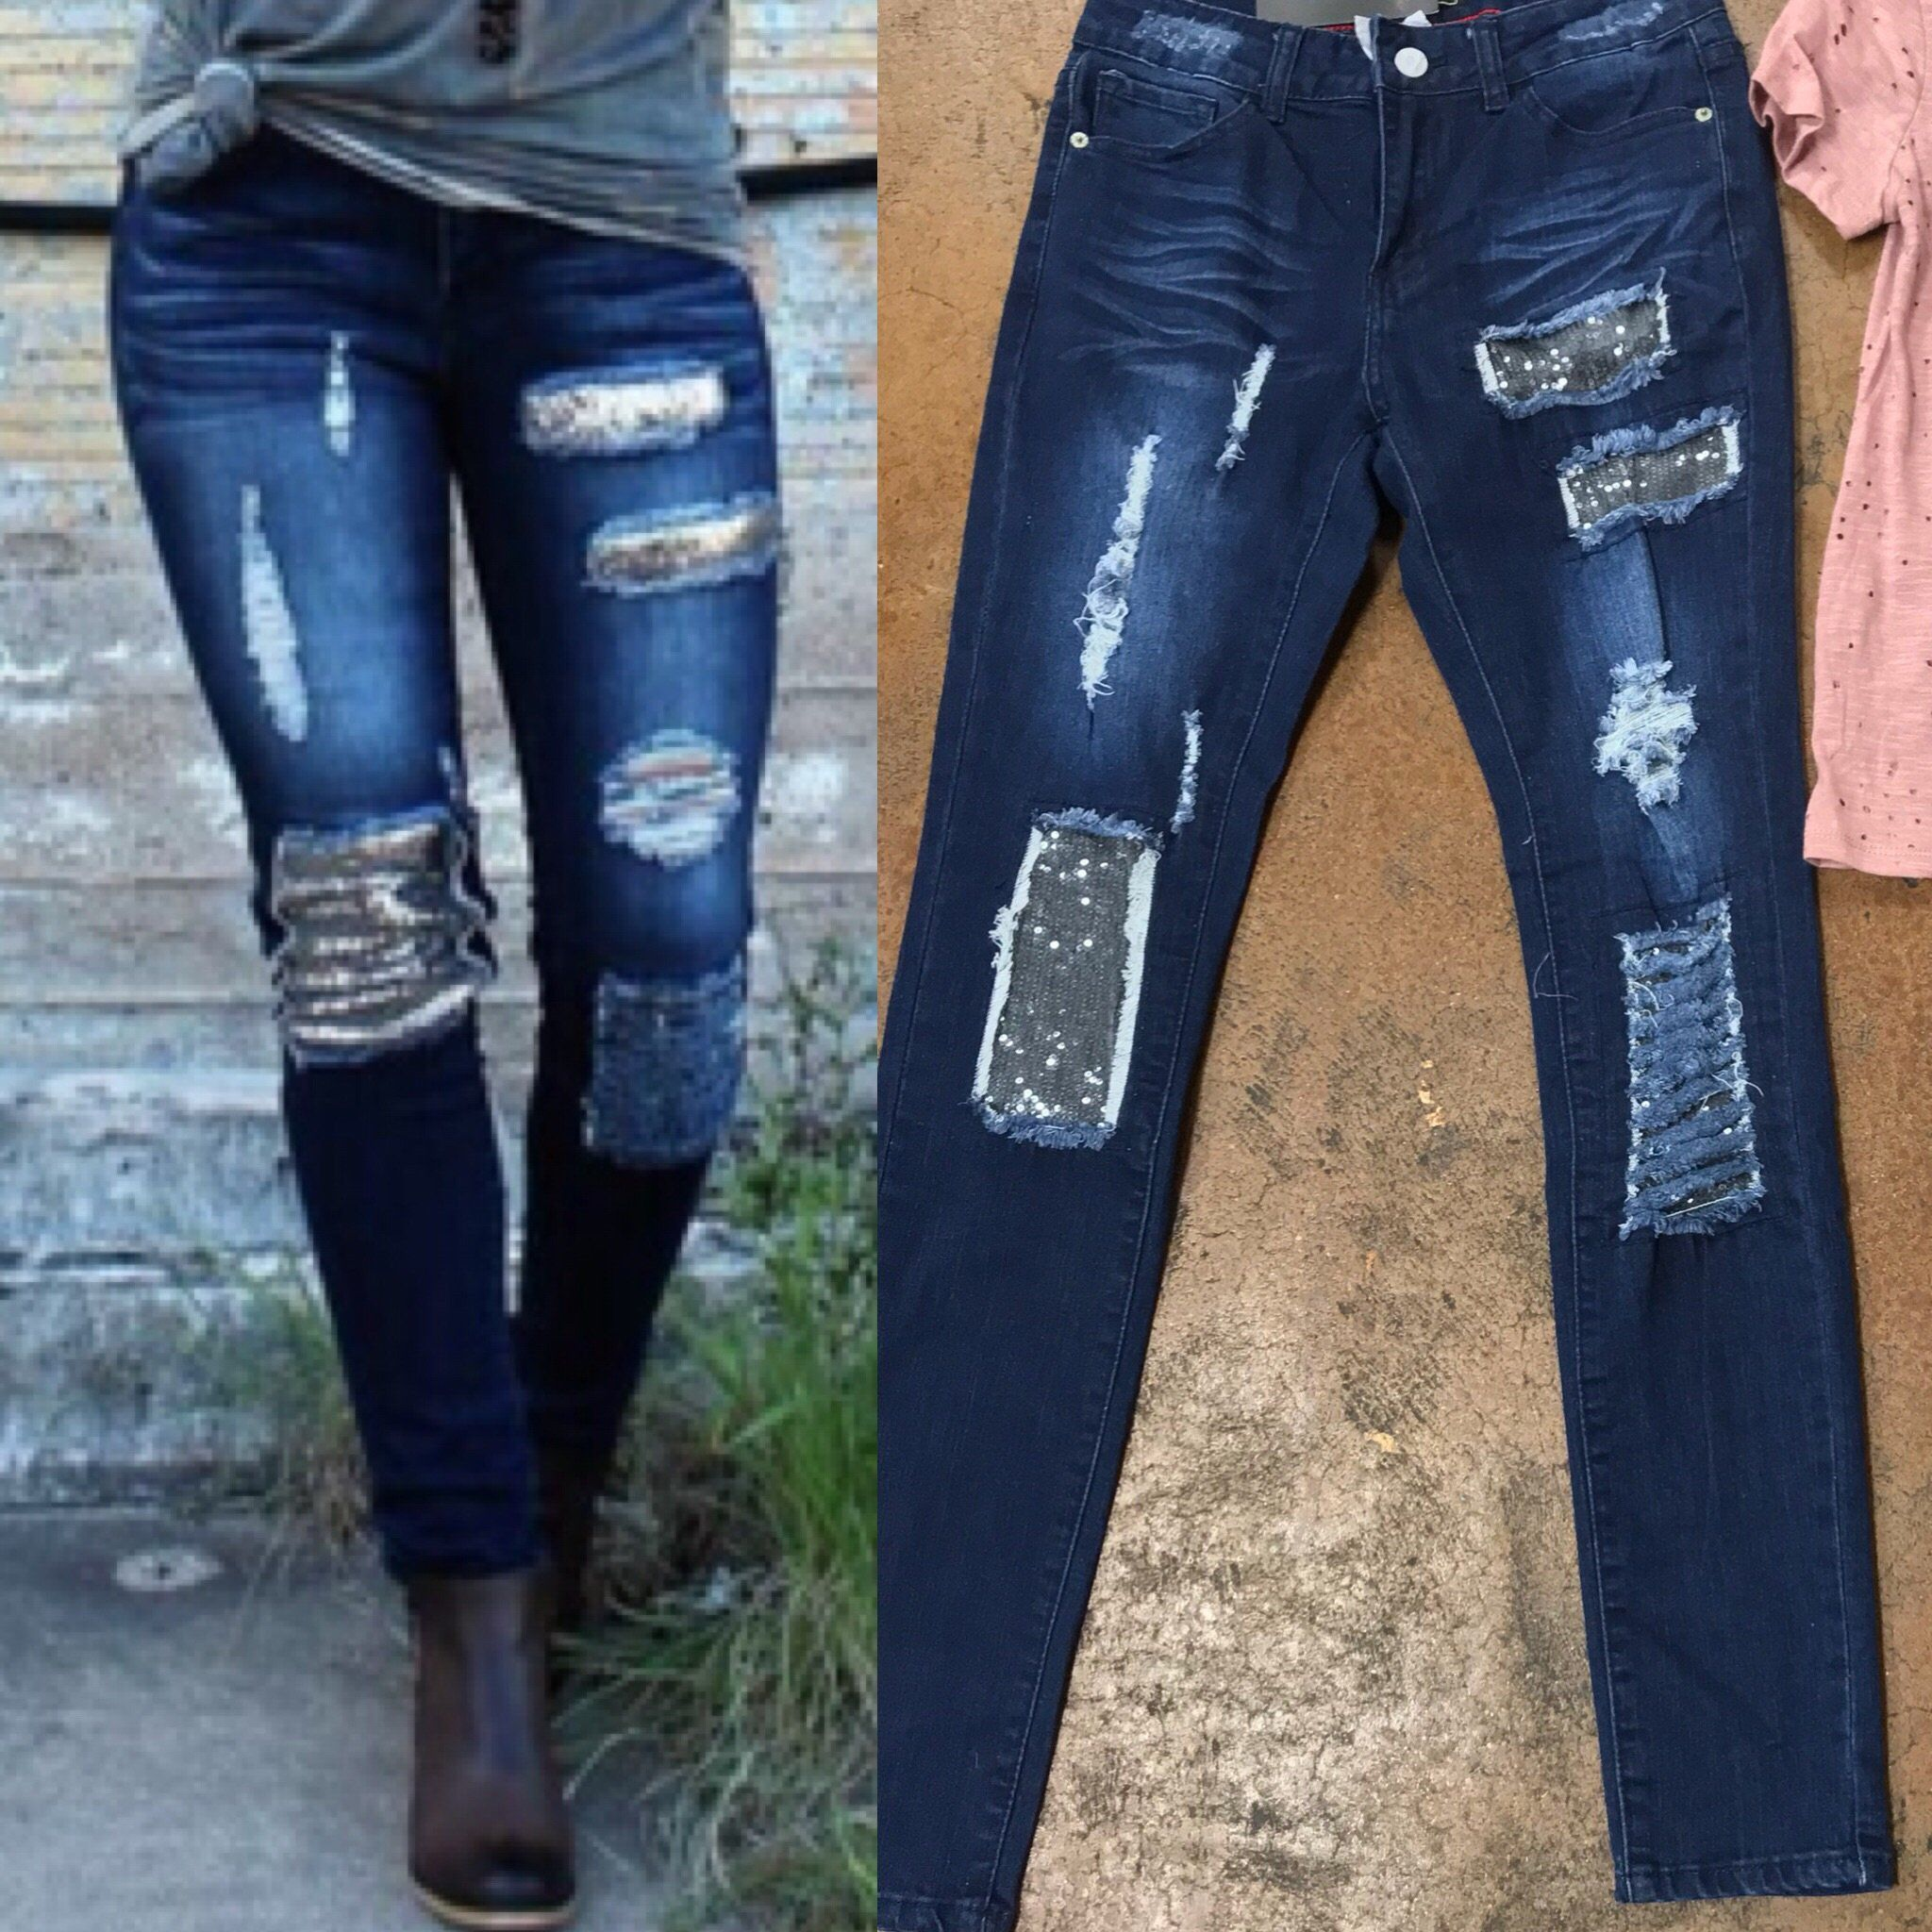 a26639d68099 Distressed dark wash skinny jeans with sequin sparkle patches. The jeans  are a mid rise with perfect amount of stretch.